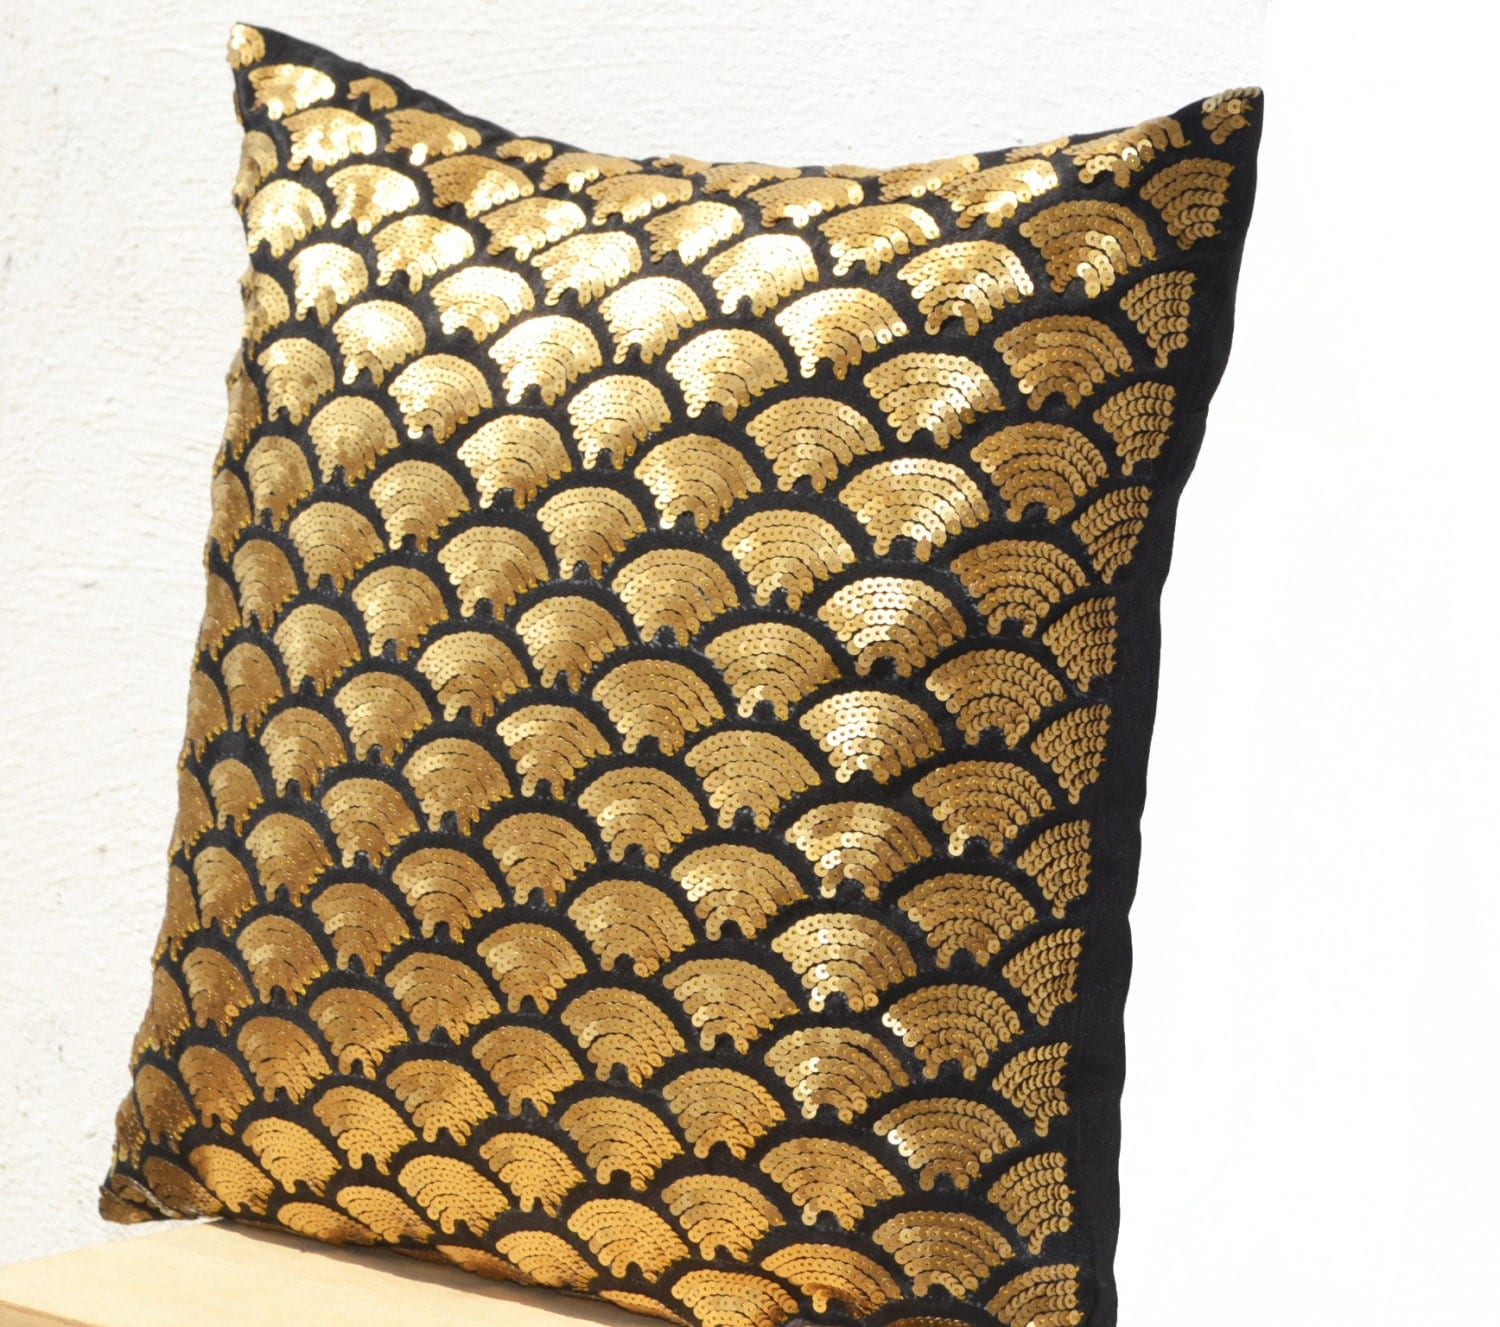 Gold sequin pillows embroidered waves Black throw pillow